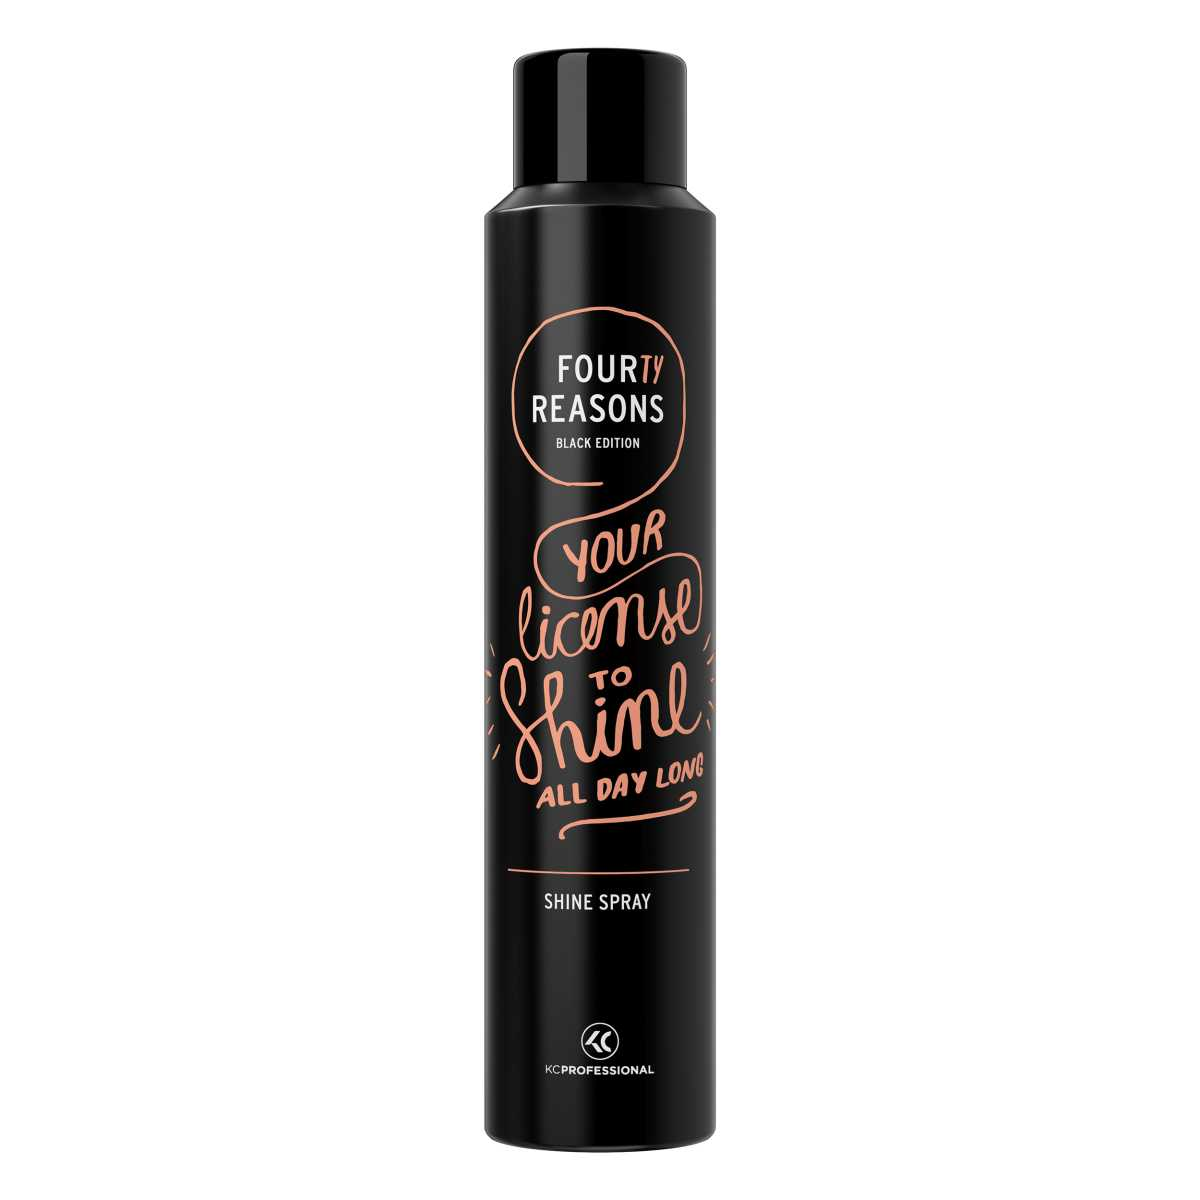 Four-Reasons-Black-Edition-Shine-Spray